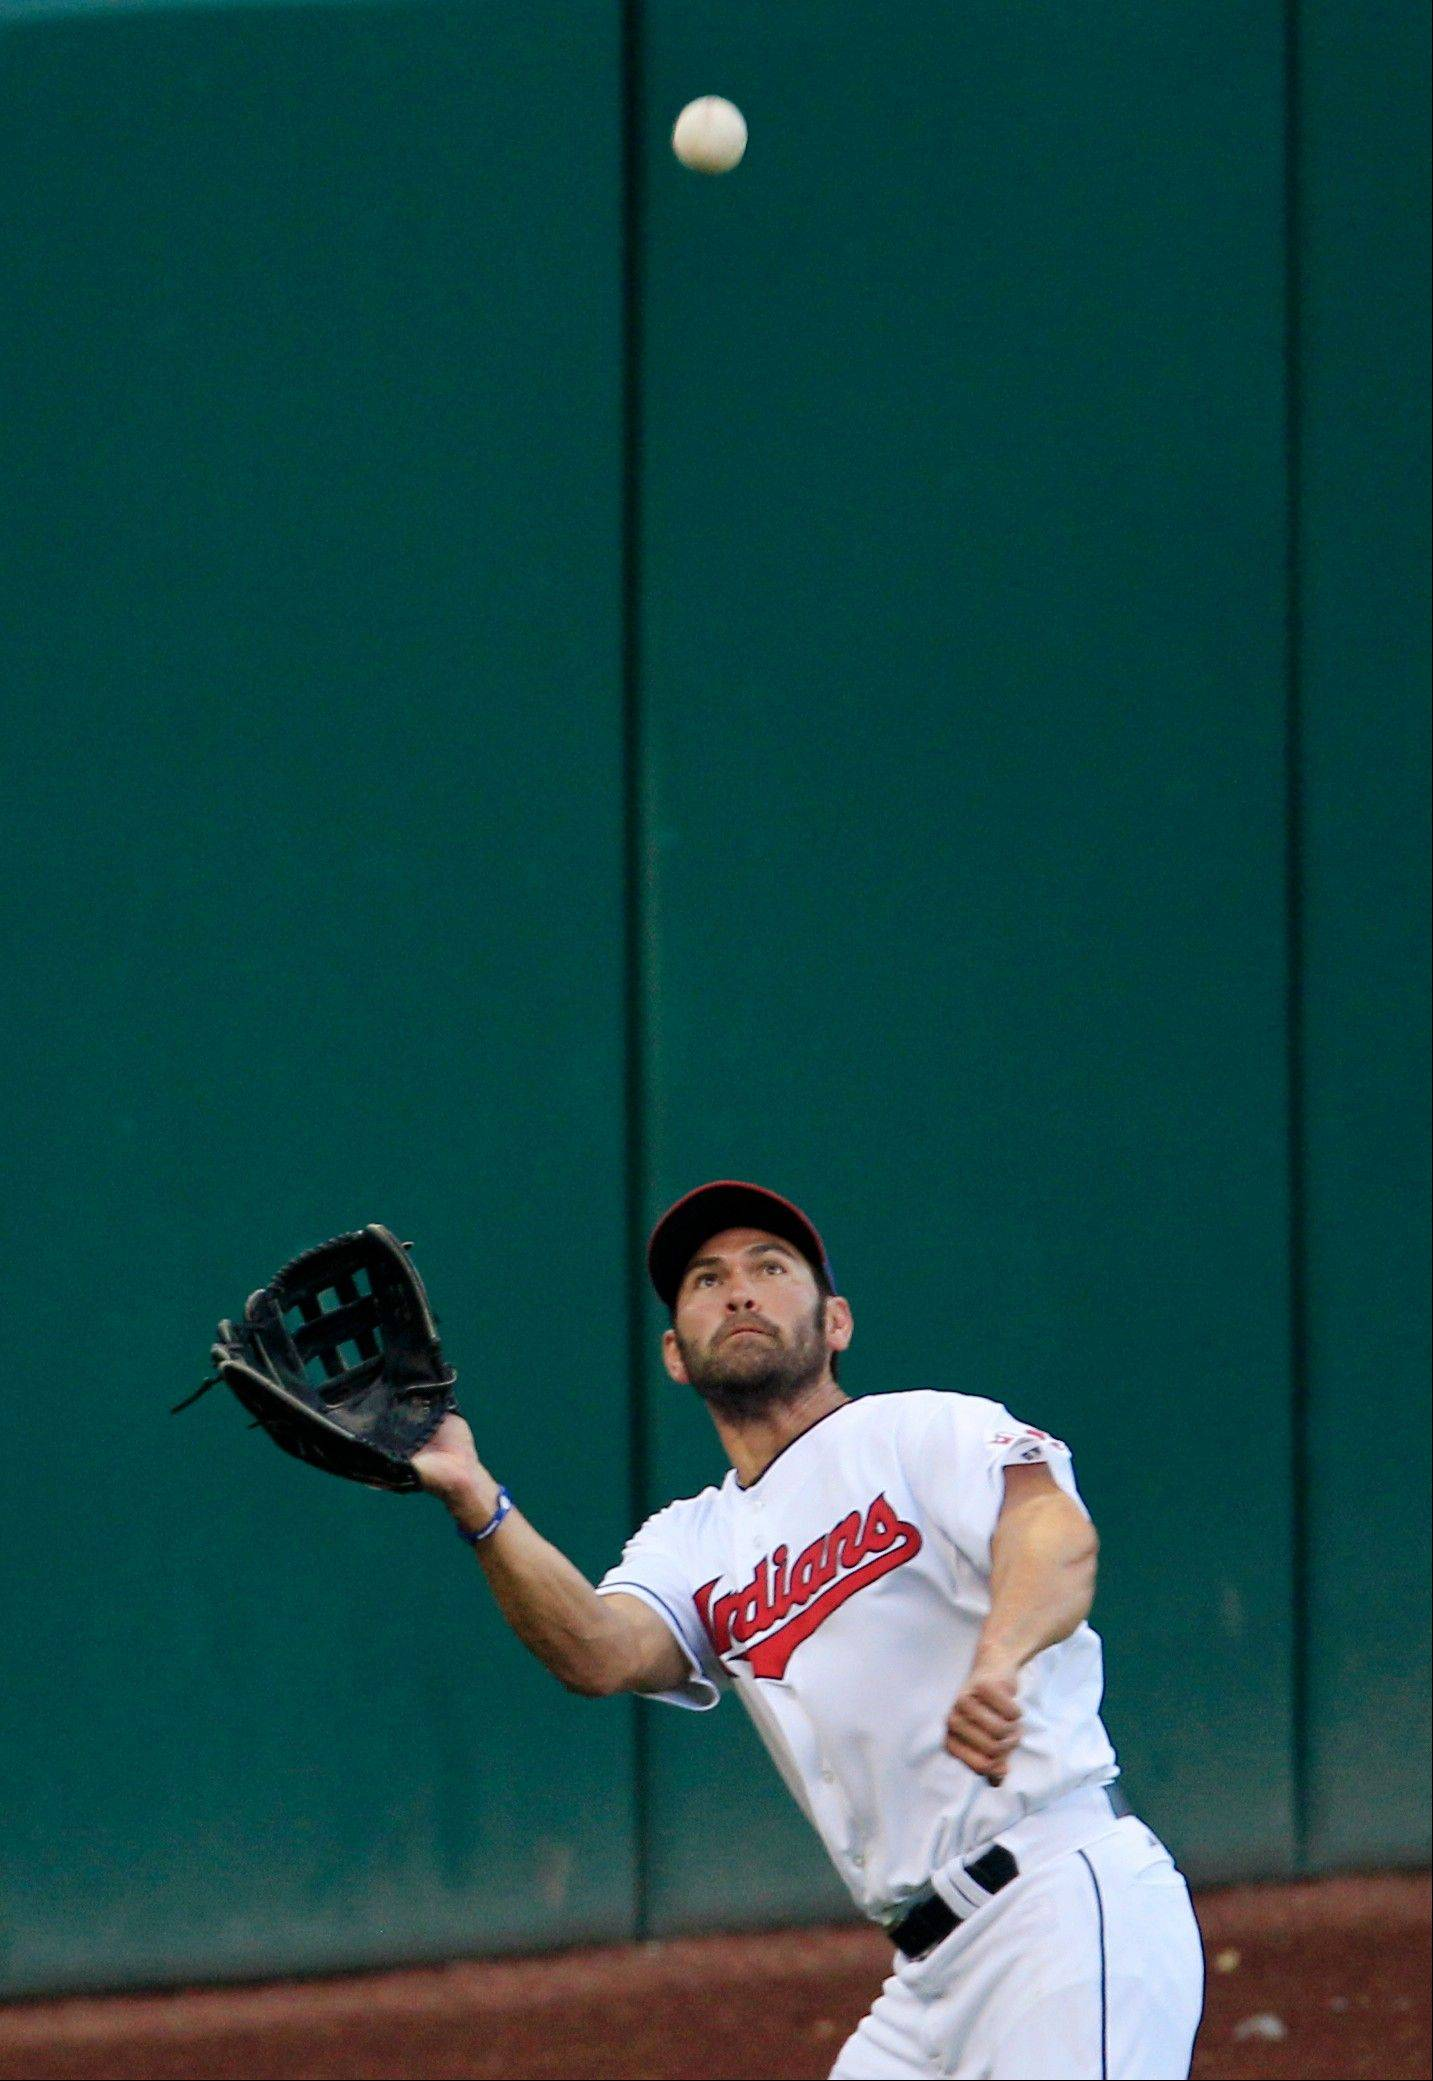 The Indians� Johnny Damon keeps his eyes on a fly ball hit by the Orioles� Wilson Betemit in the fifth inning Monday in Cleveland.